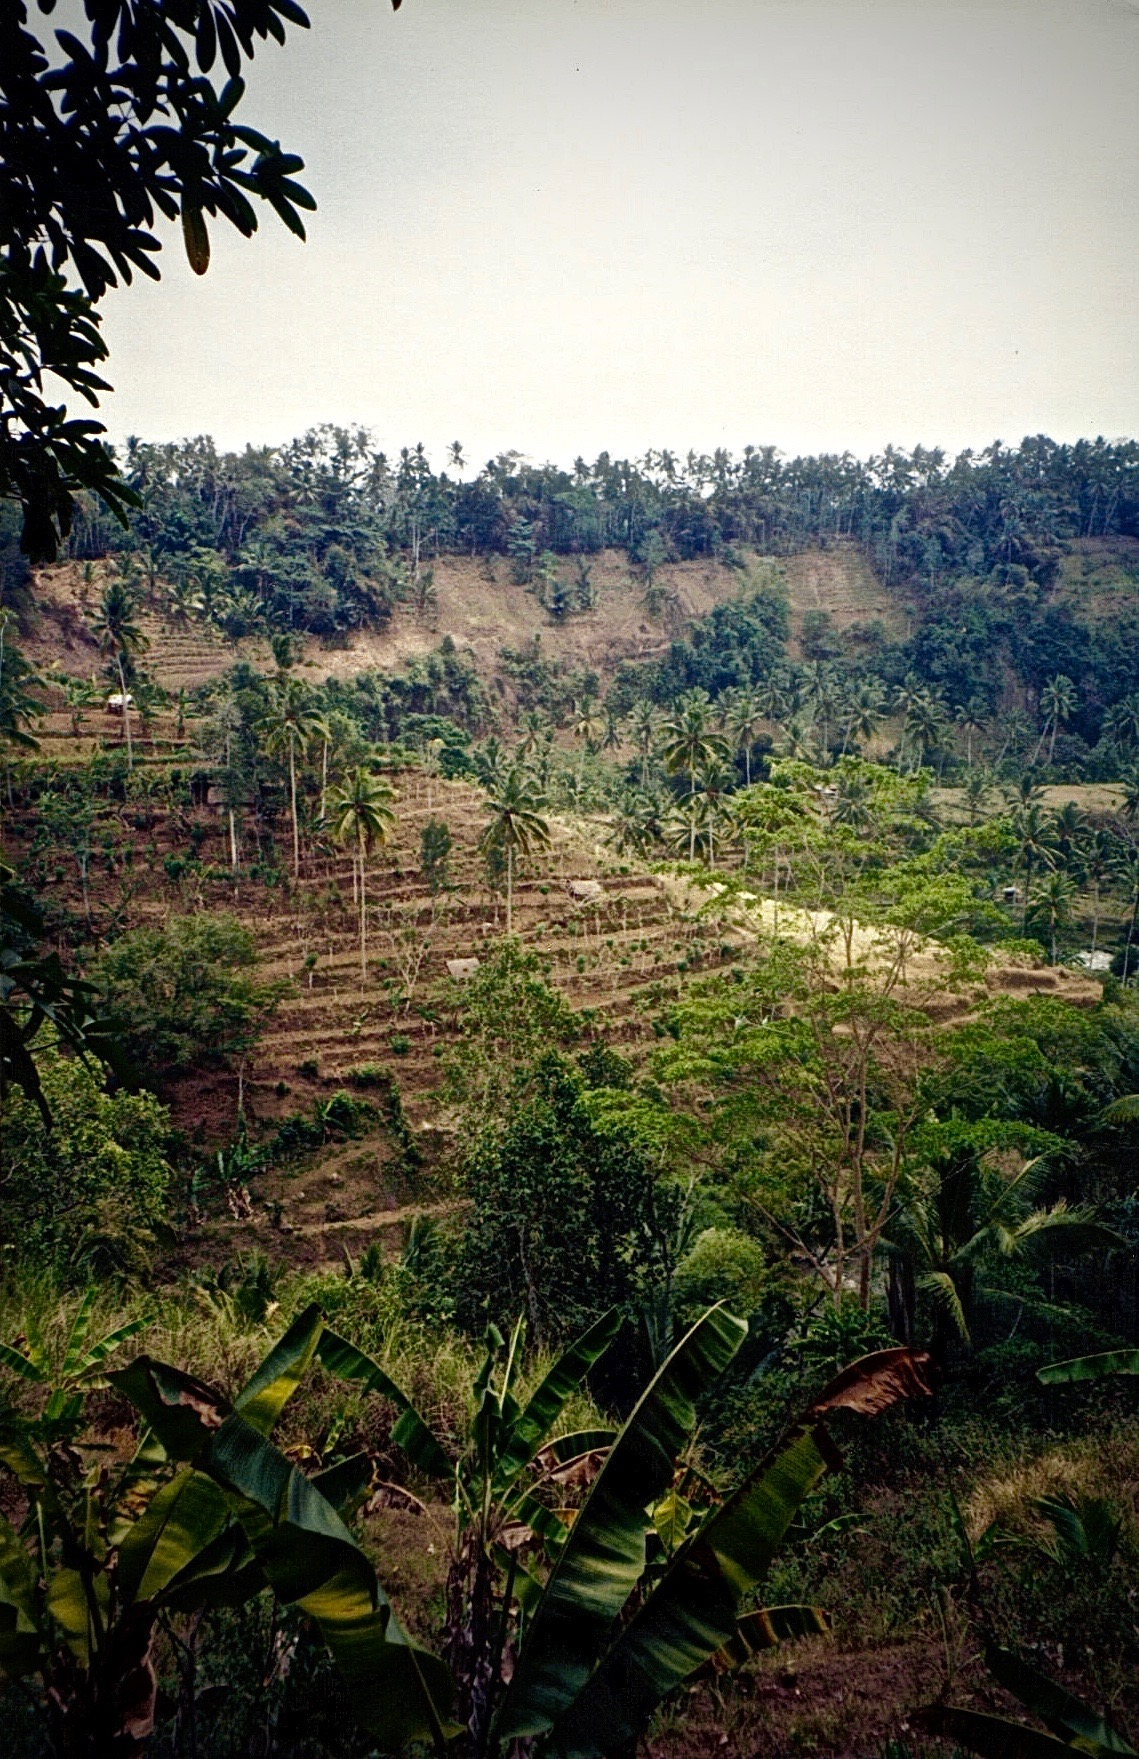 Rice paddies on the road to Ubud, Bali, Indonesia